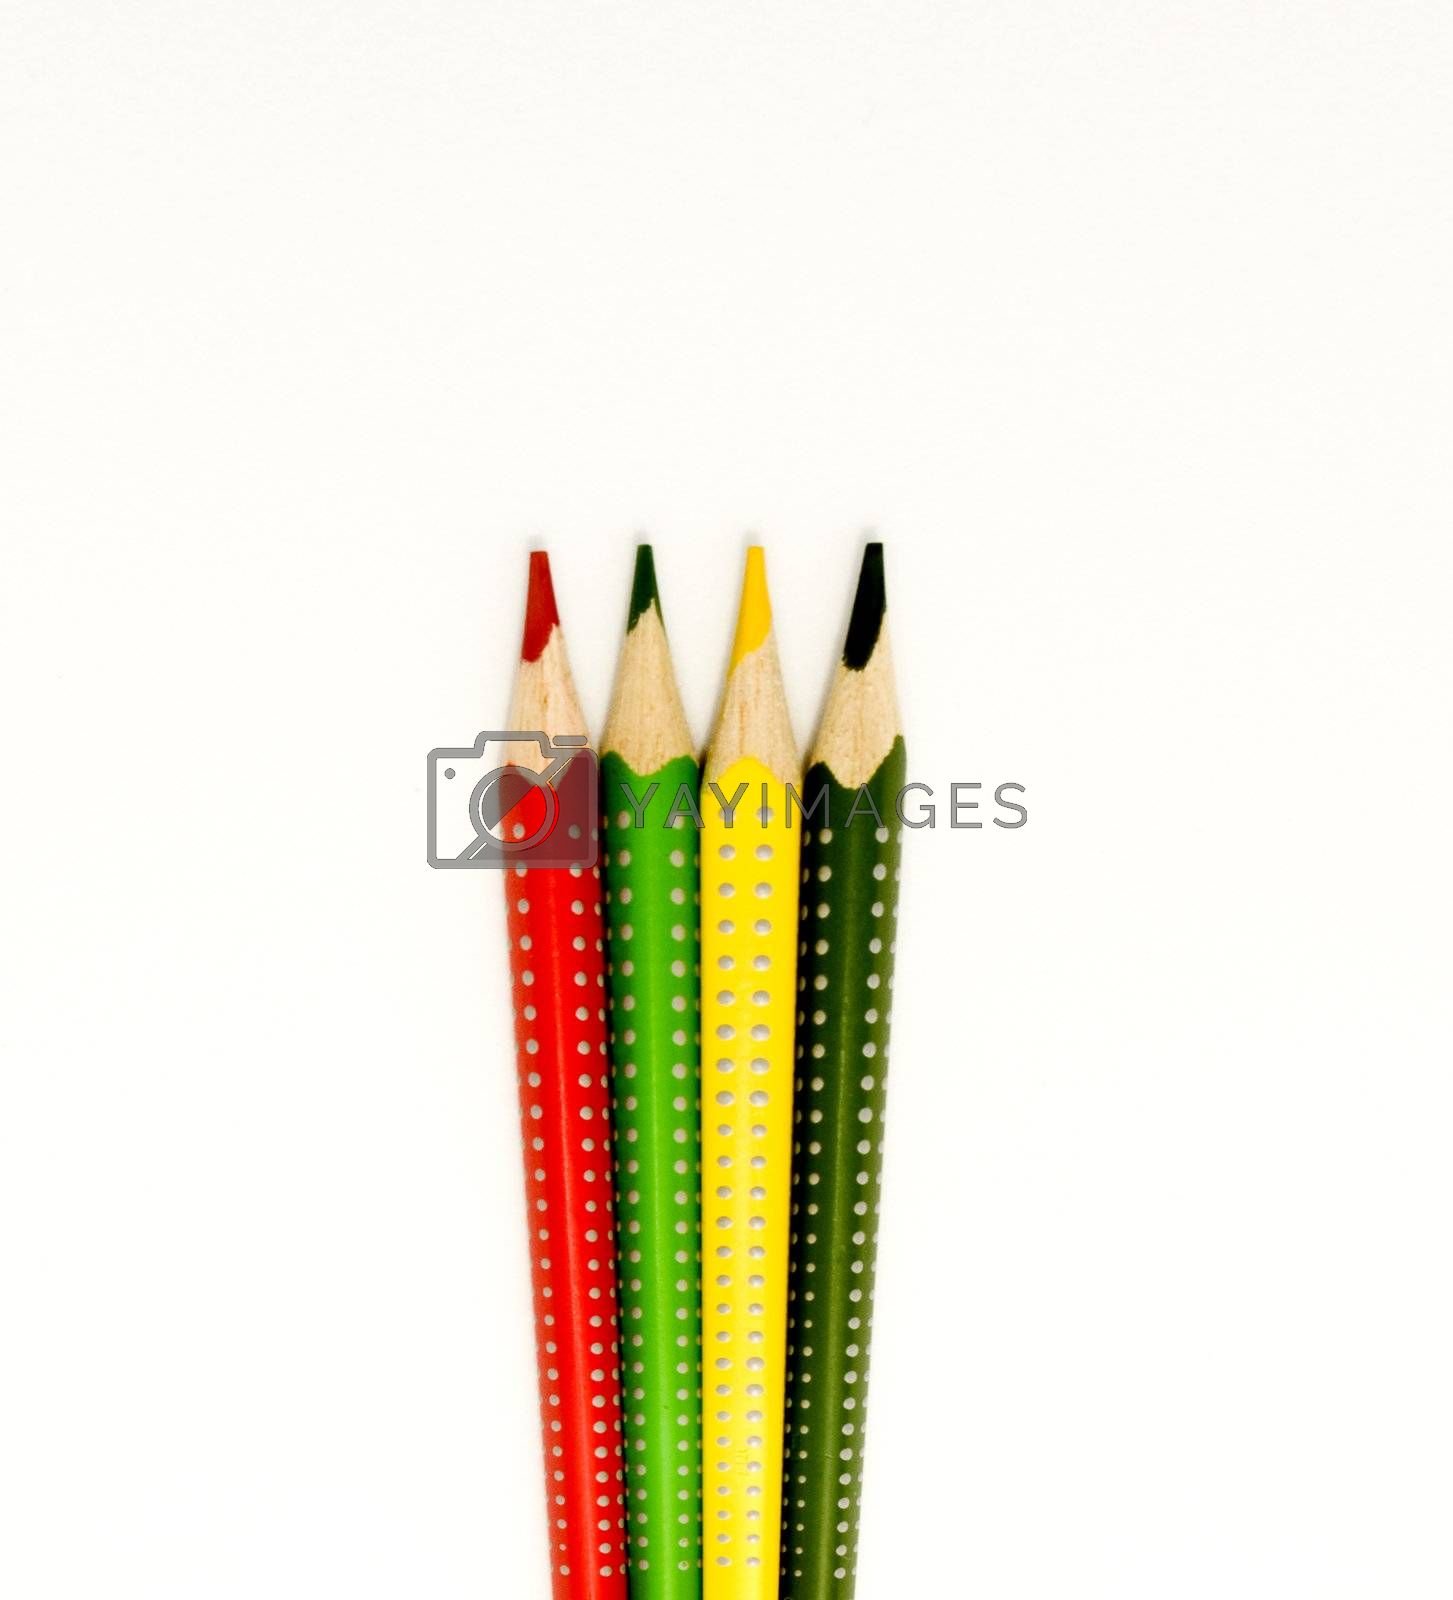 colors, yellow, green, orange, red and blue on white background